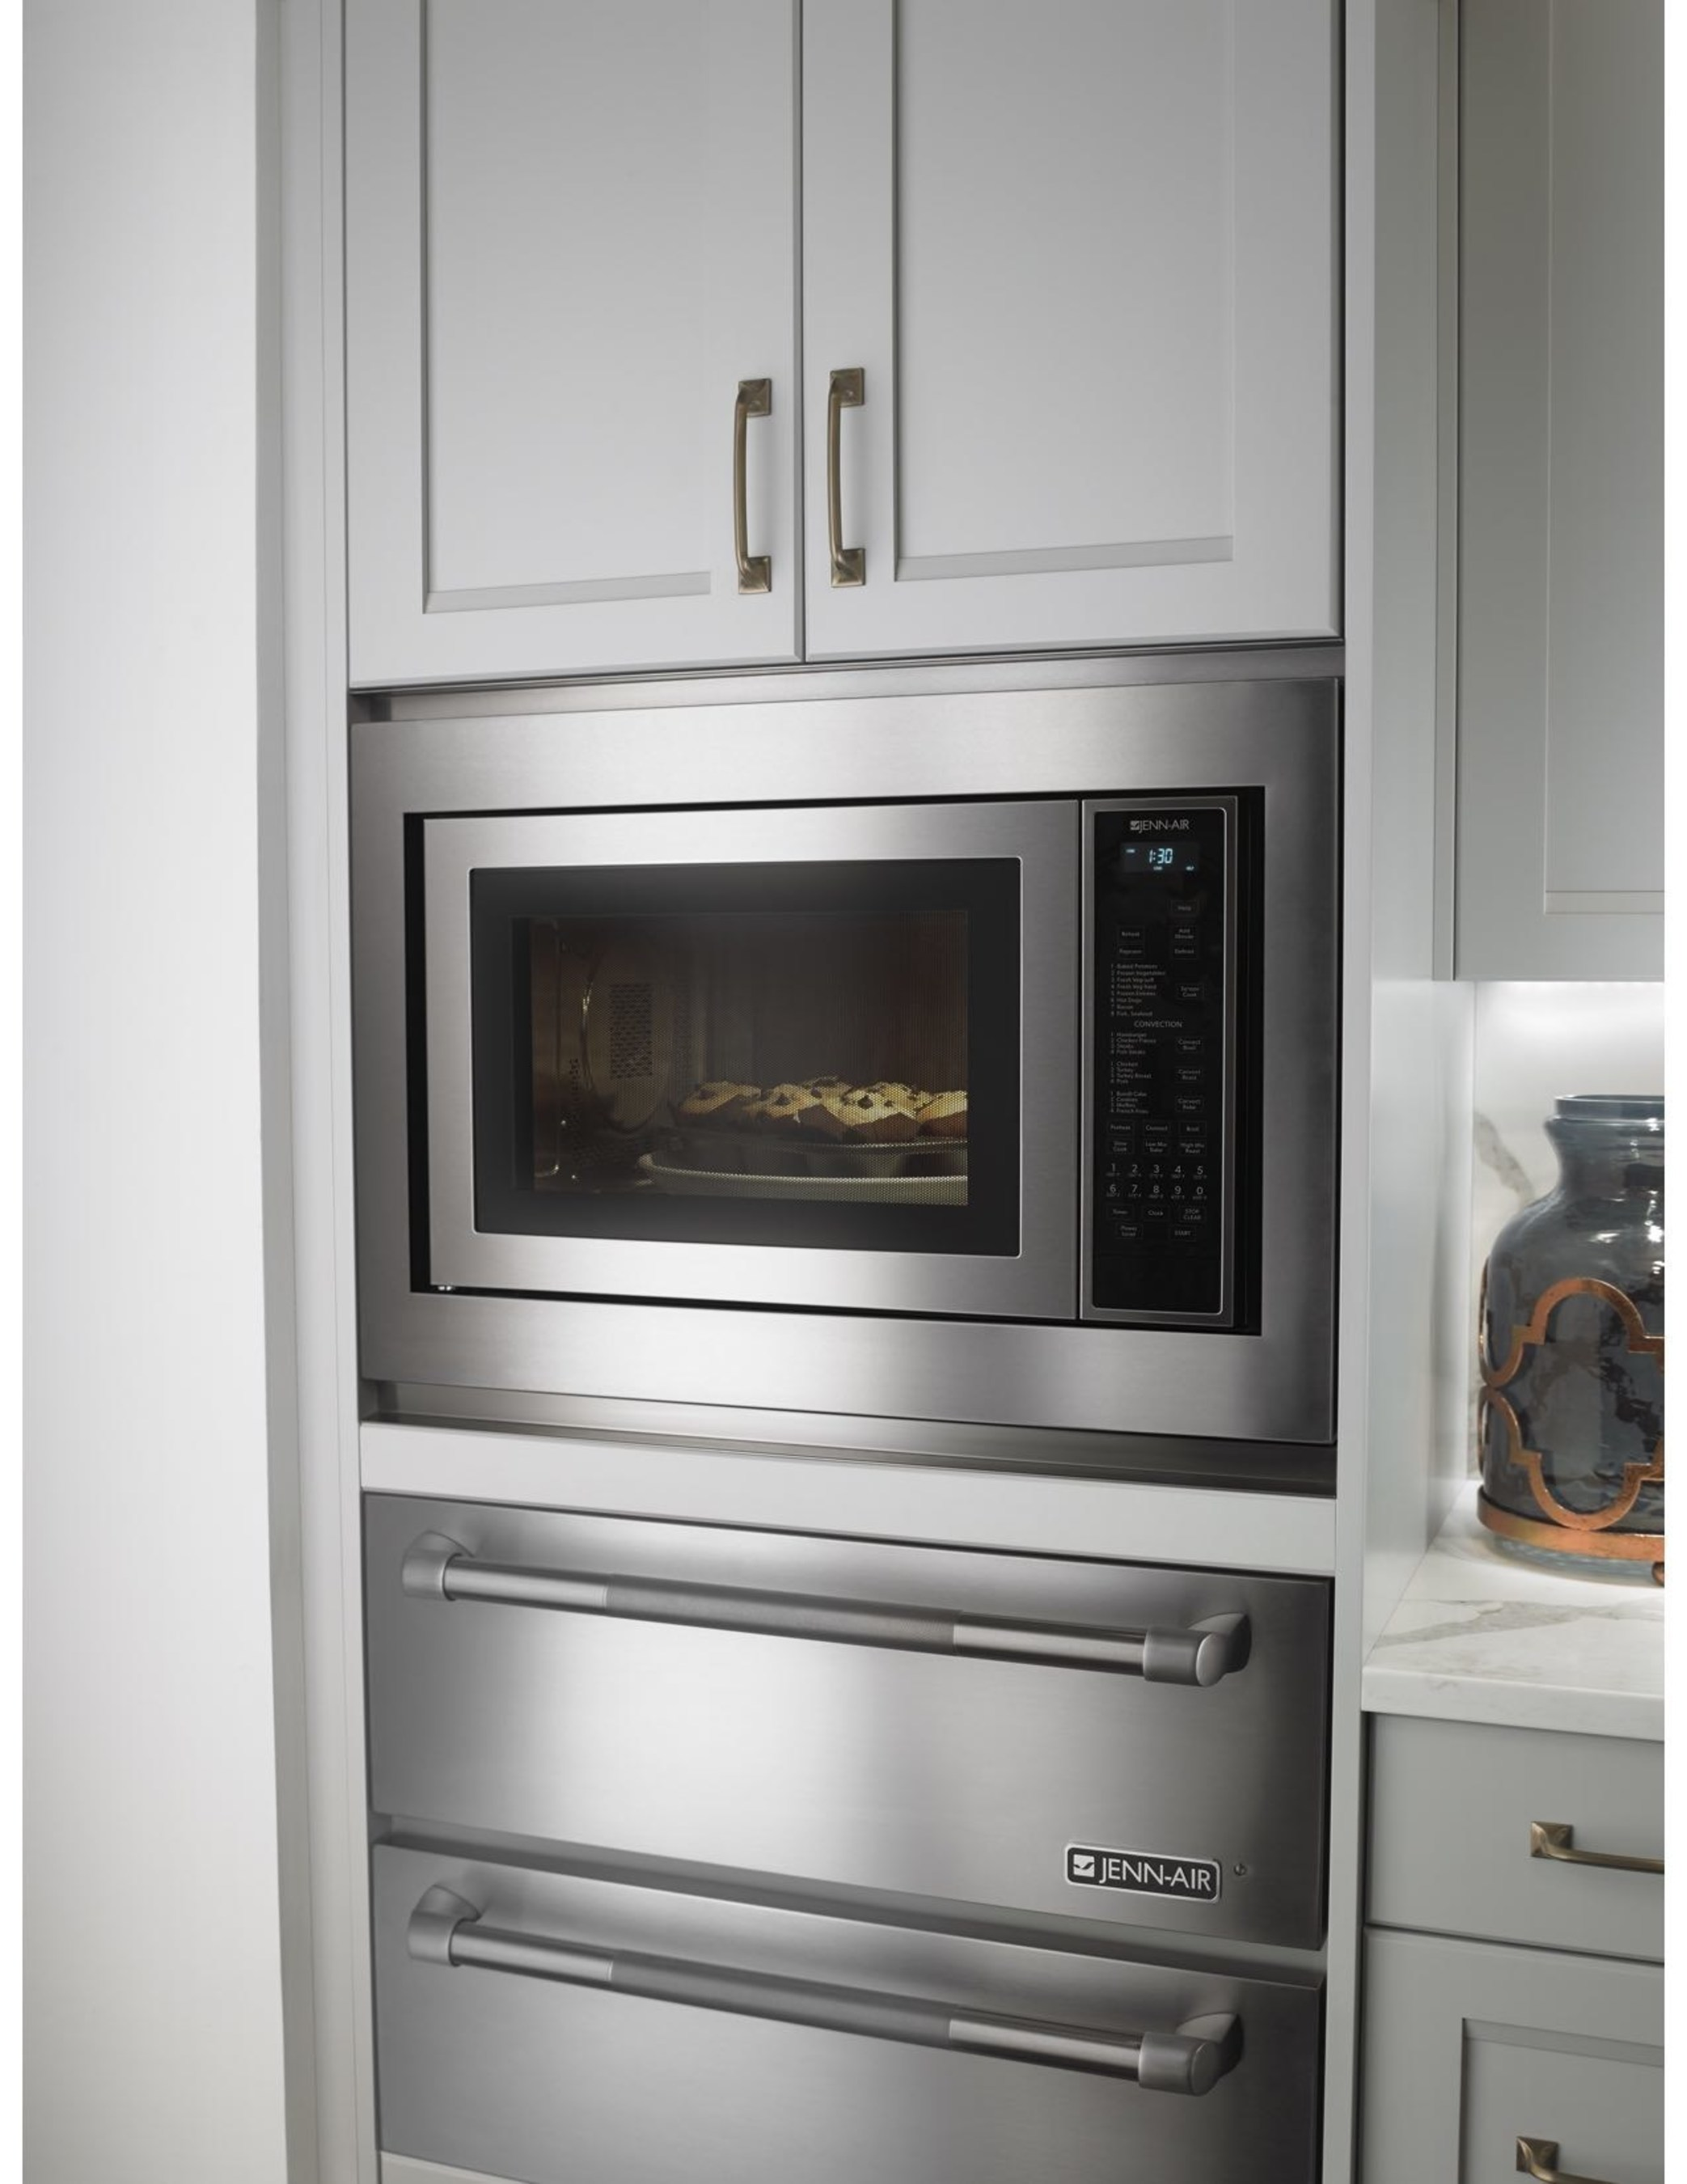 Countertop Convection Microwave Ovens